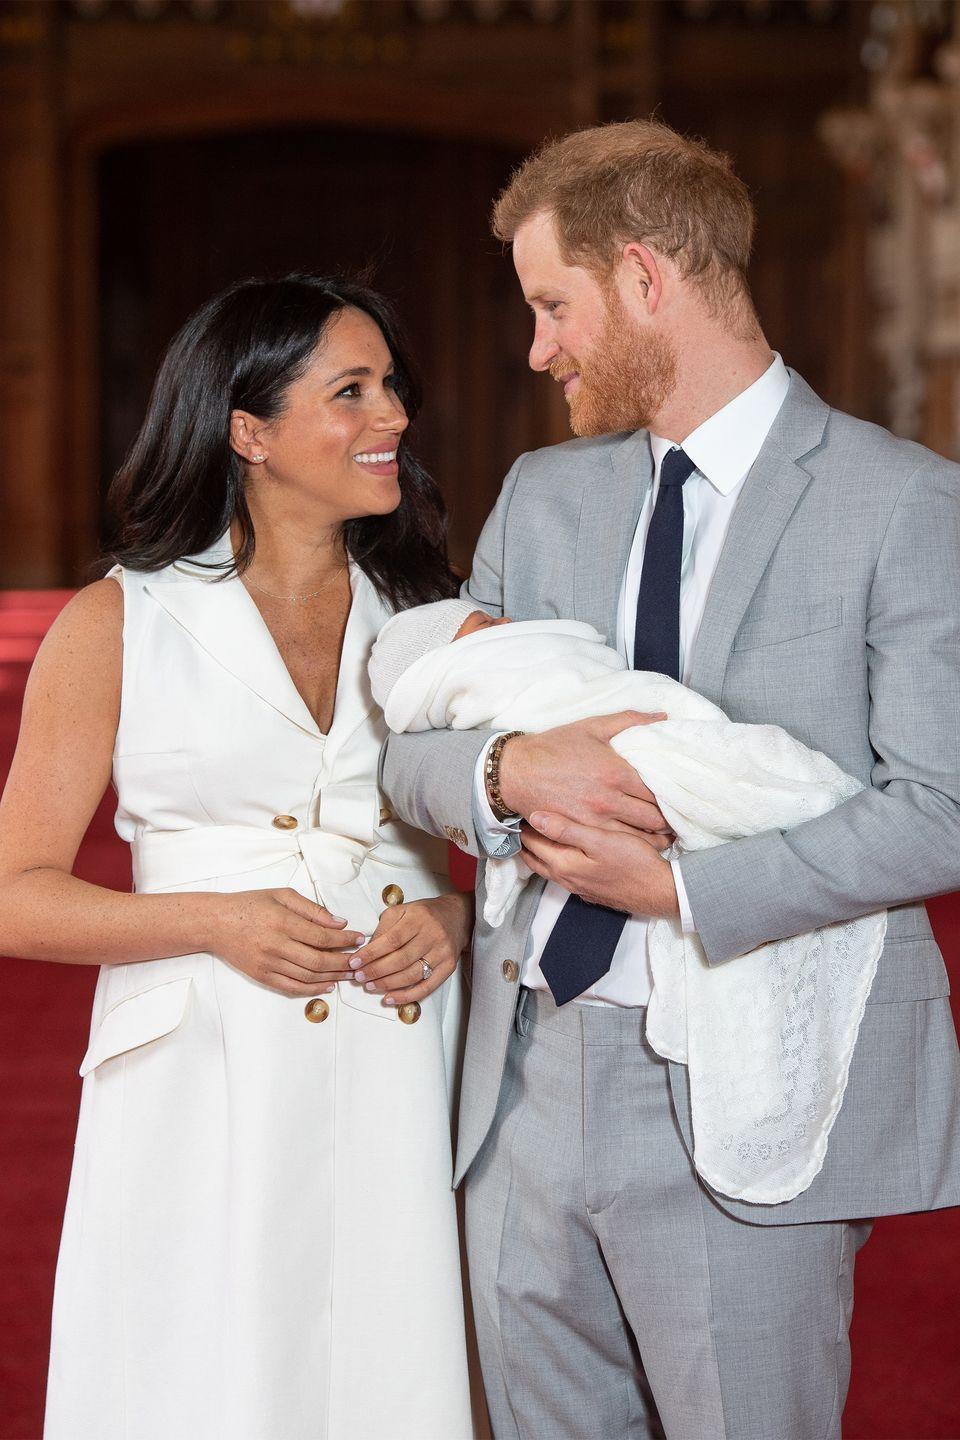 <p>Harry and Meghan pose with their newborn son, Archie Harrison Mountbatten-Windsor, during a photocall in St. George's Hall at Windsor Castle.</p>